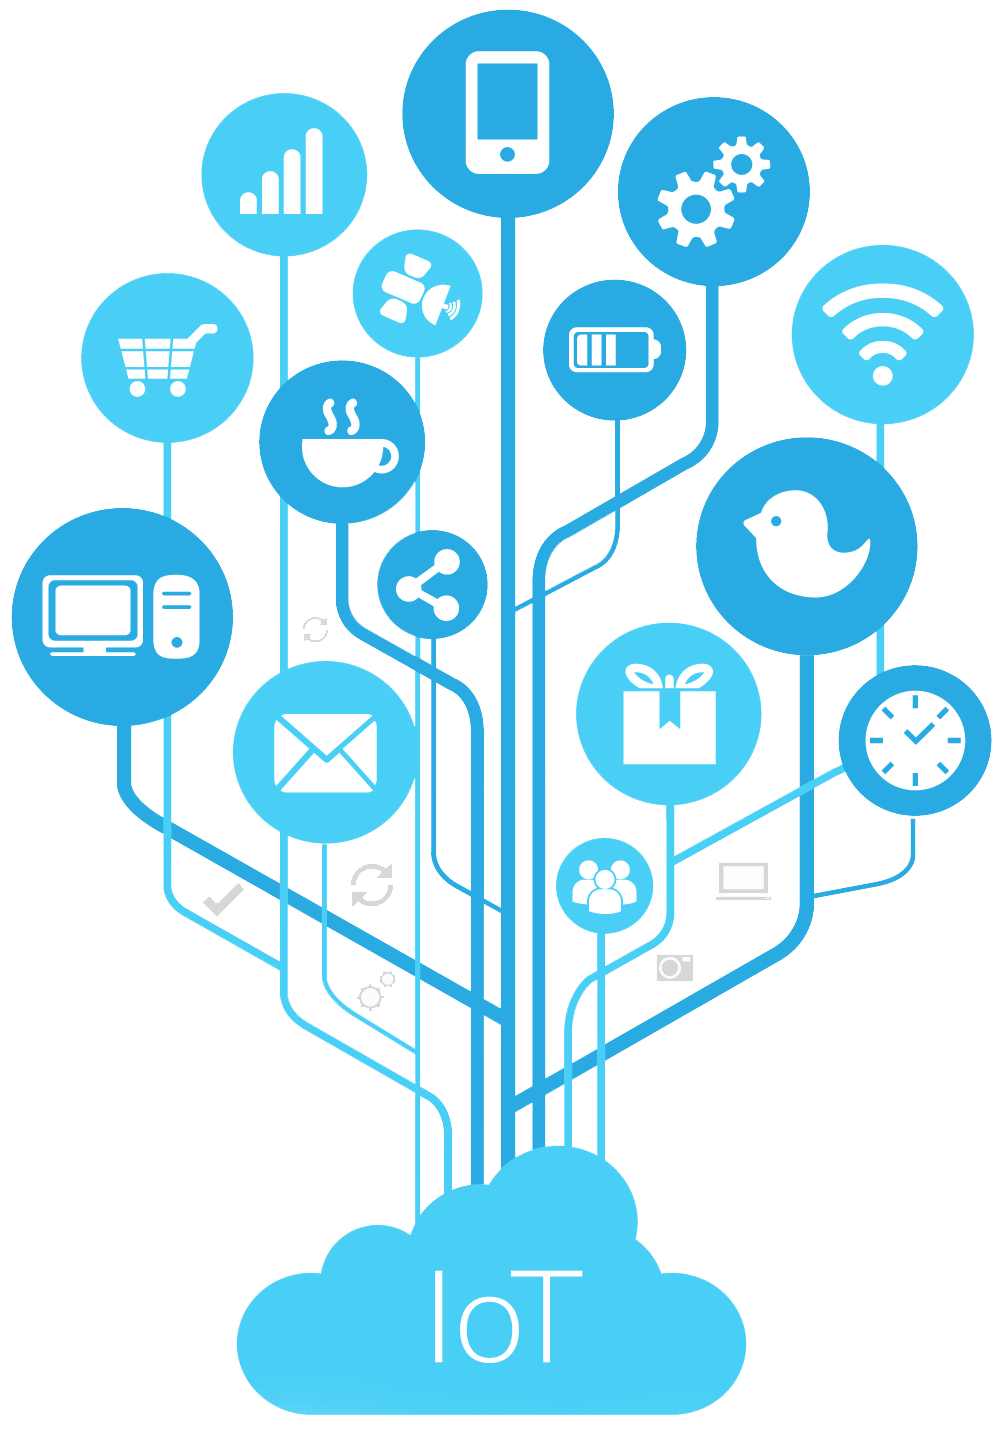 iot tree icon